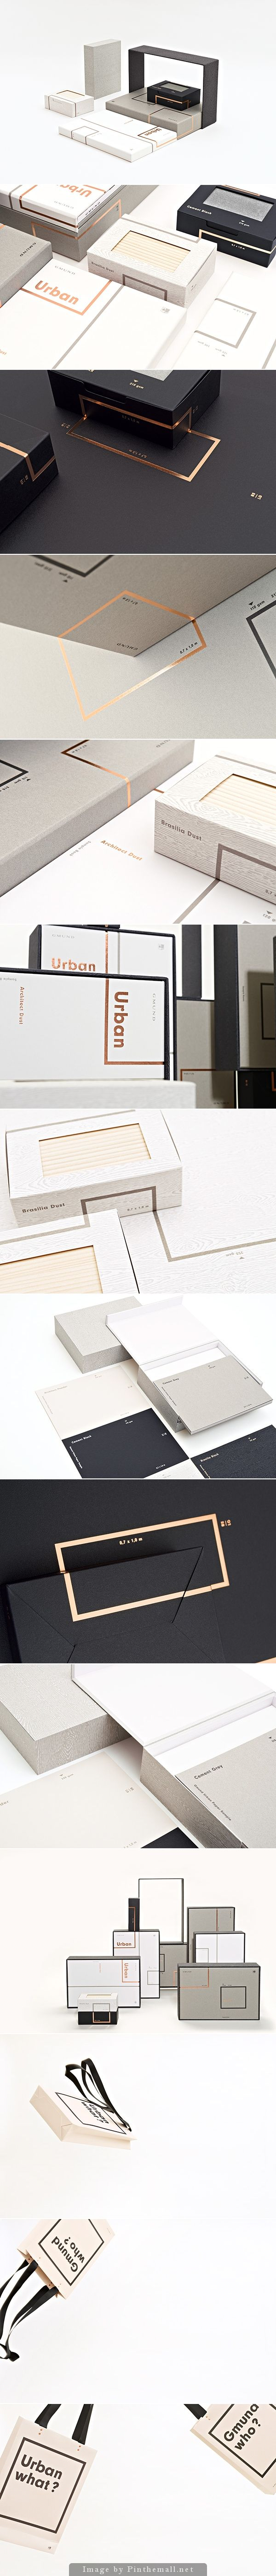 Urban modern box #packaging design ideas. I love the monochromatic color pallet with gold foil accent.